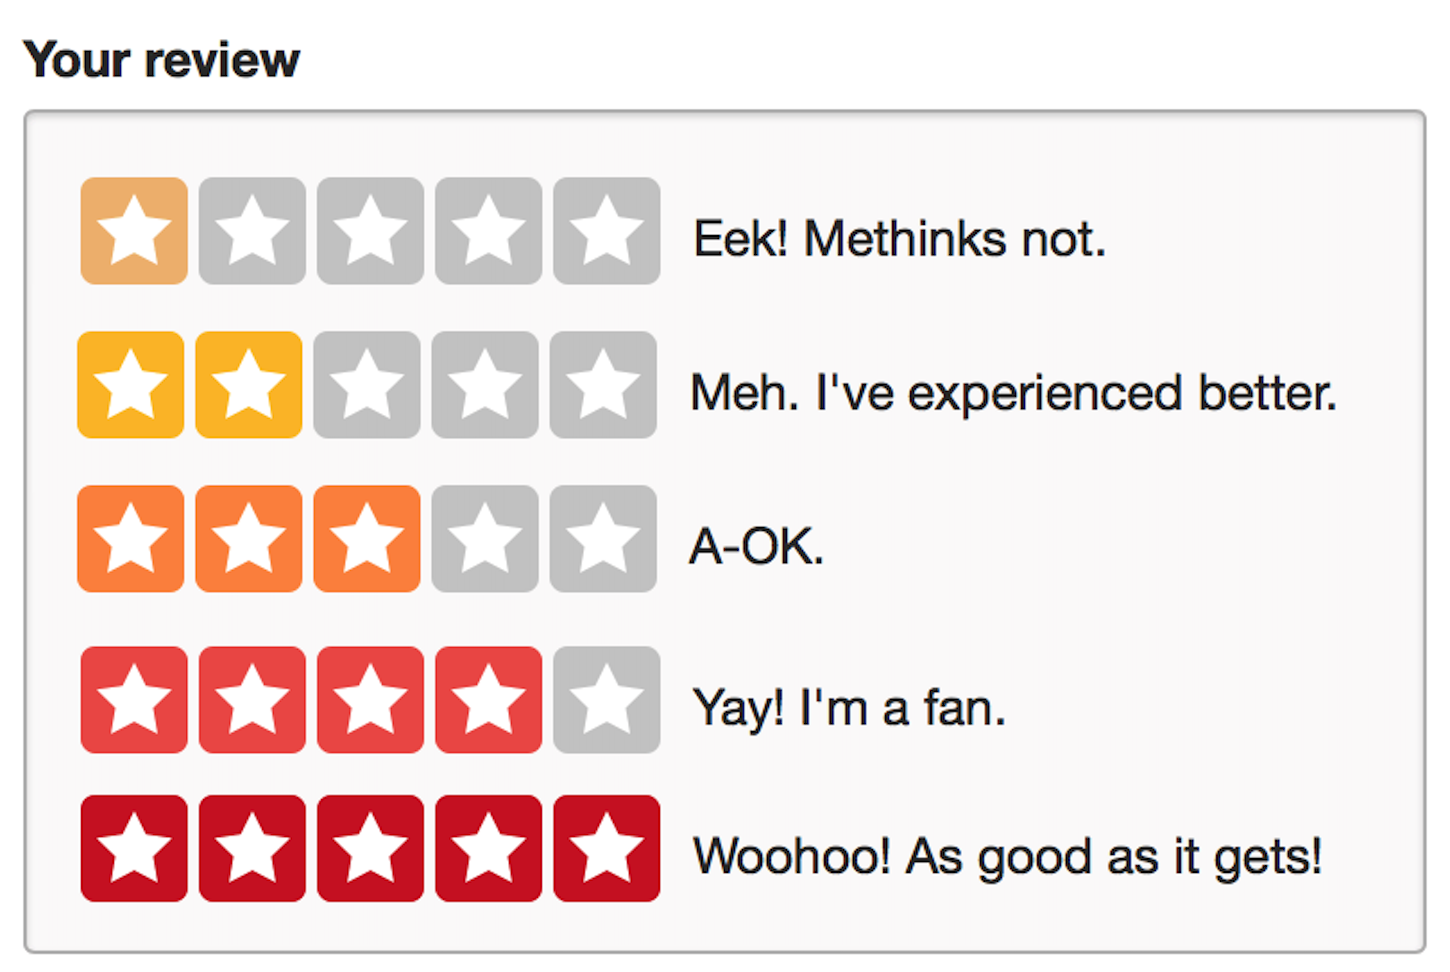 humor-in-design-yelp-reviews